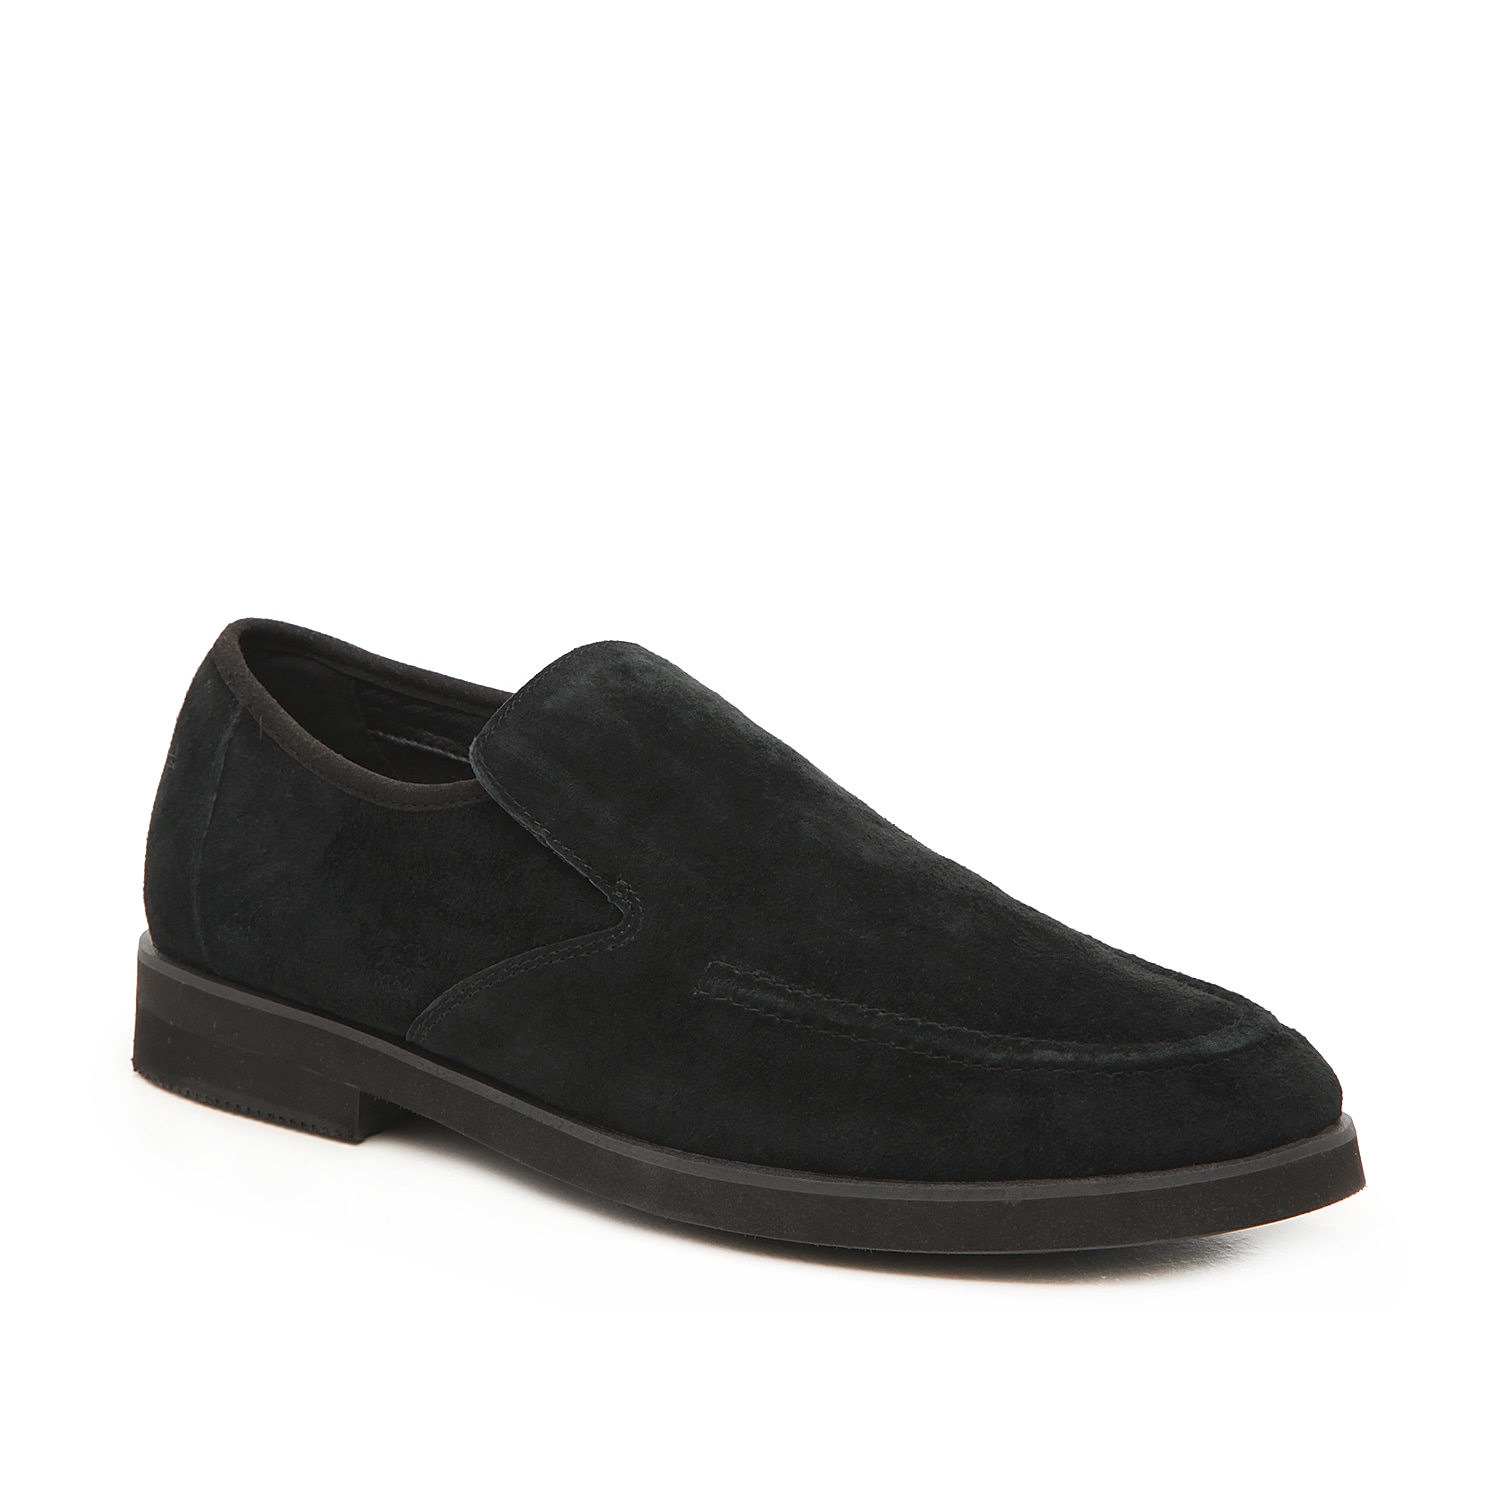 Look distinguished in the Bracco loafer from Hush Puppies. These suede slip-ons feature a plush insole and durable sole that will take you from work to weekend with no problem.